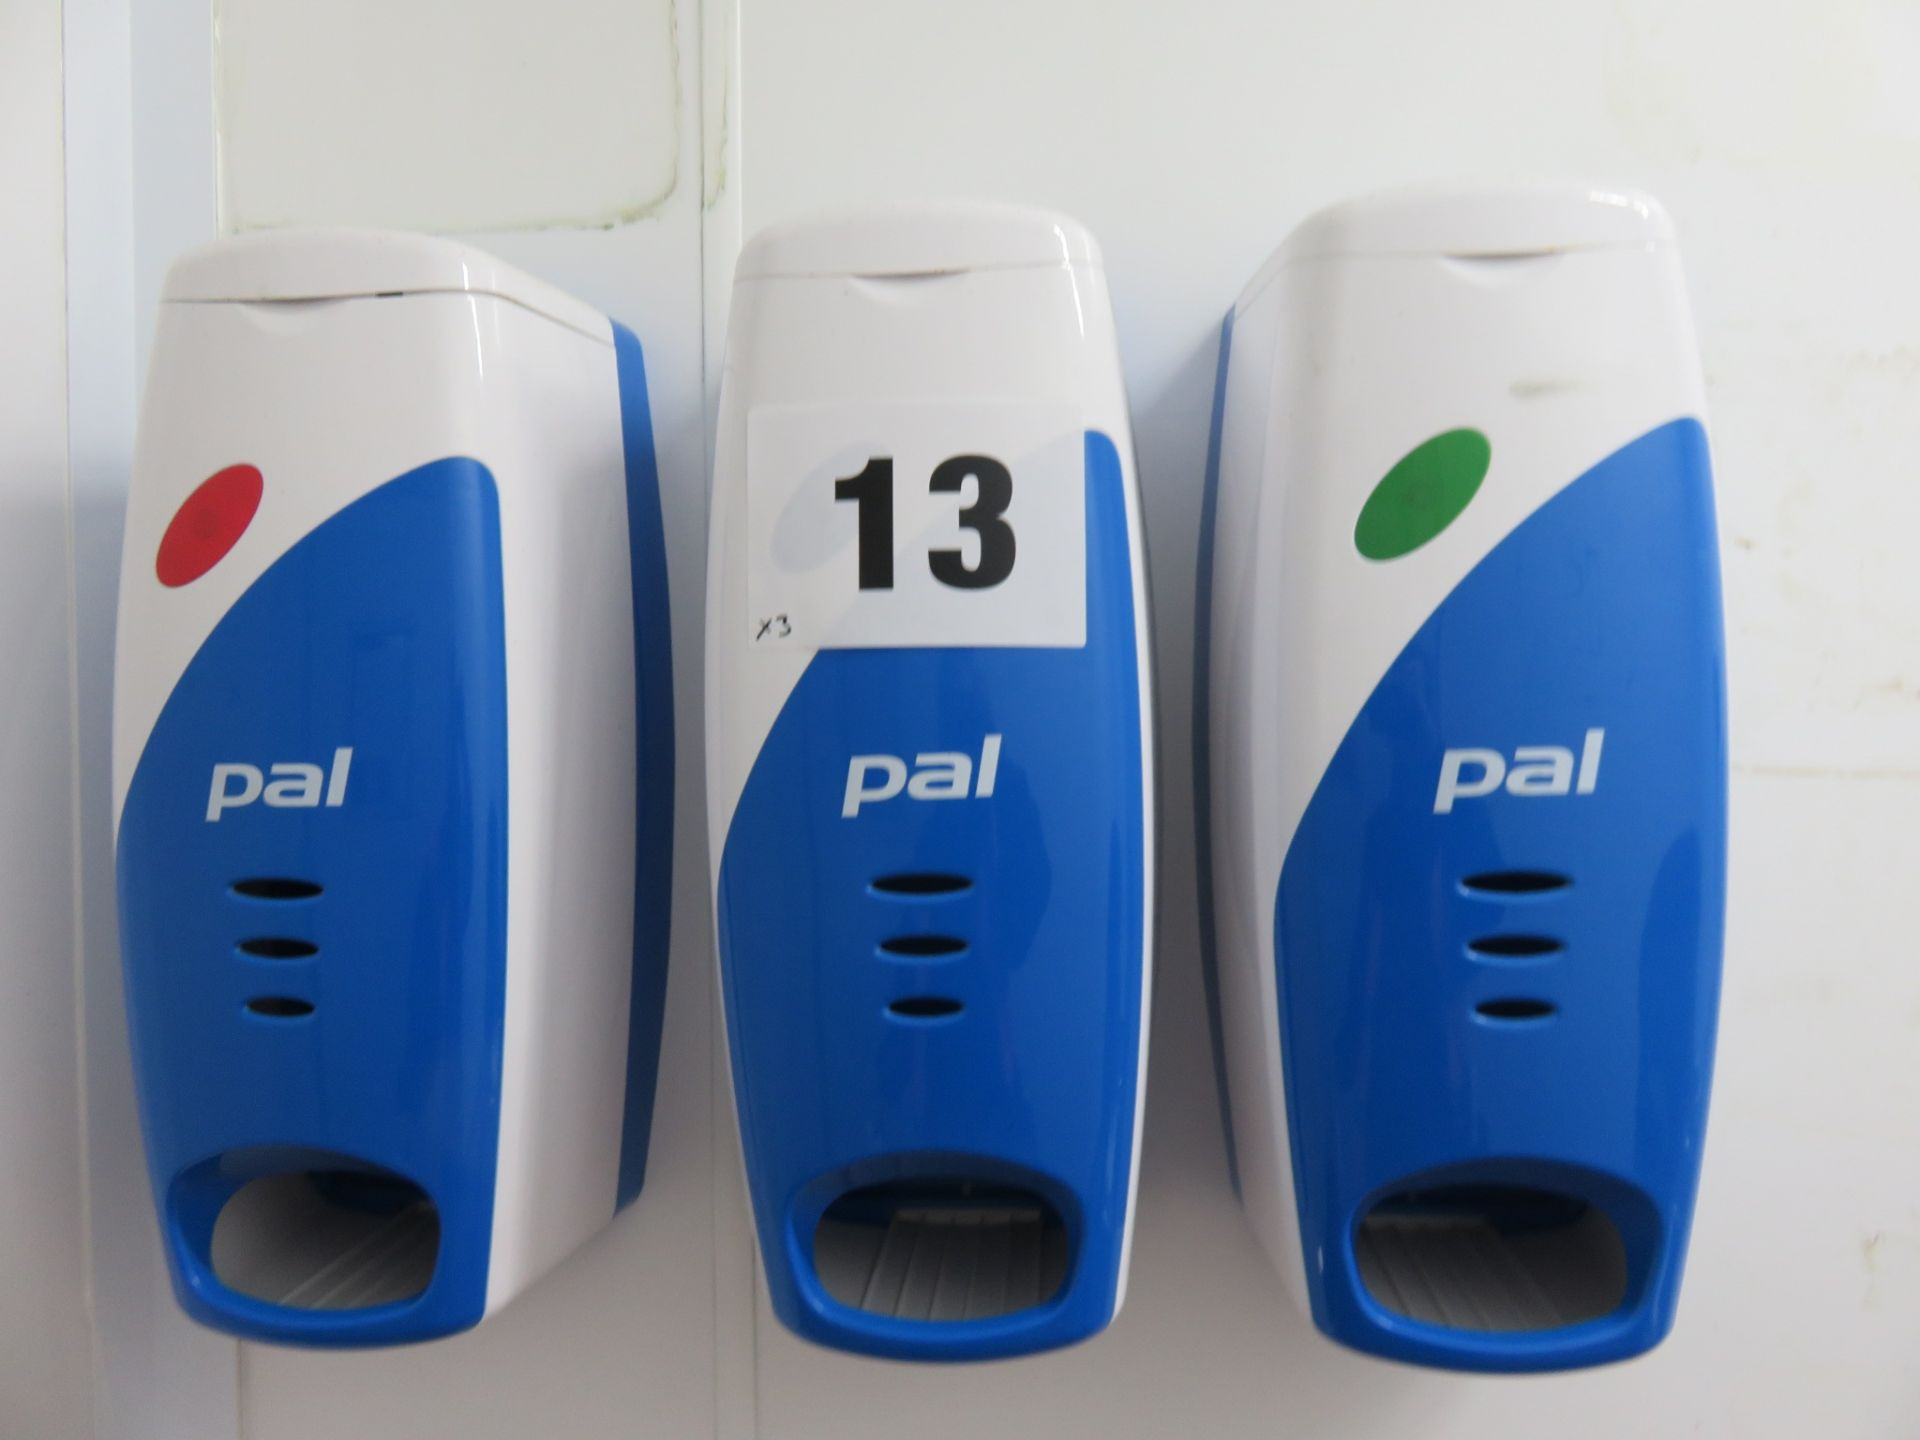 Lot 13 - 3 x Dispensers for hair nets etc., Wall Mounted. Lift out £10